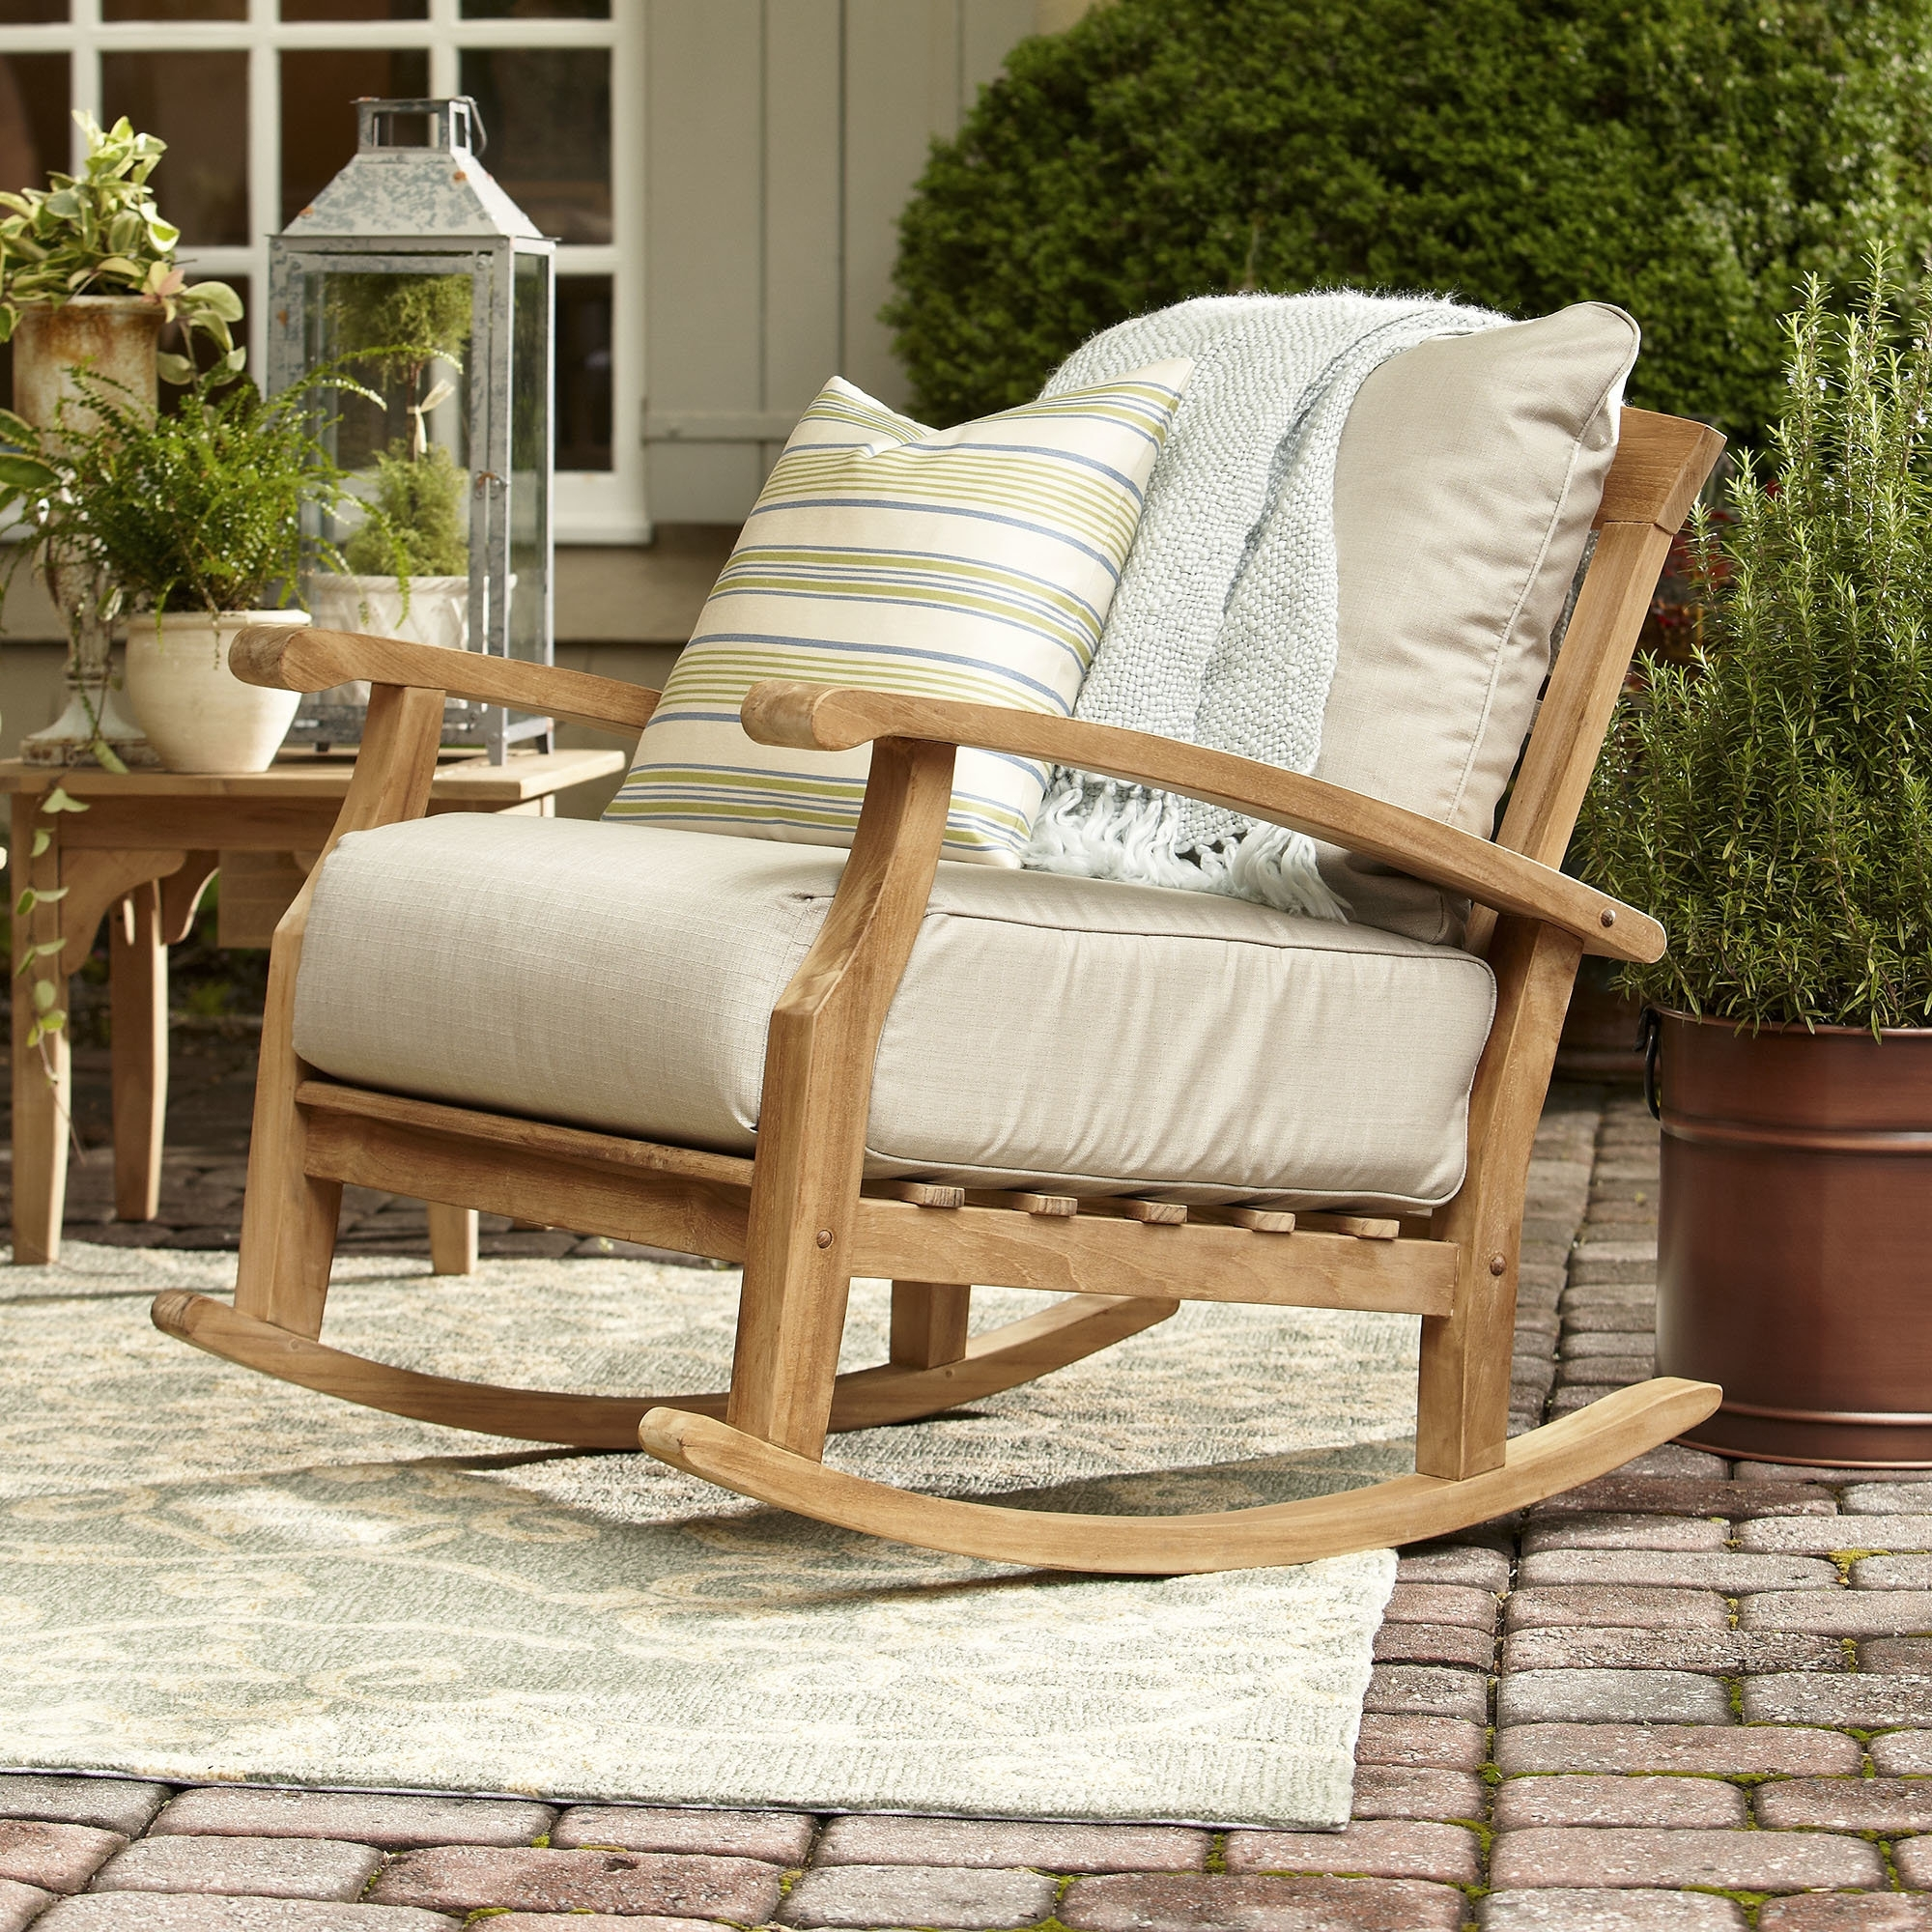 Birch Lane™ Summerton Teak Rocking Chair & Reviews | Birch Lane With Regard To Teak Patio Rocking Chairs (View 2 of 15)